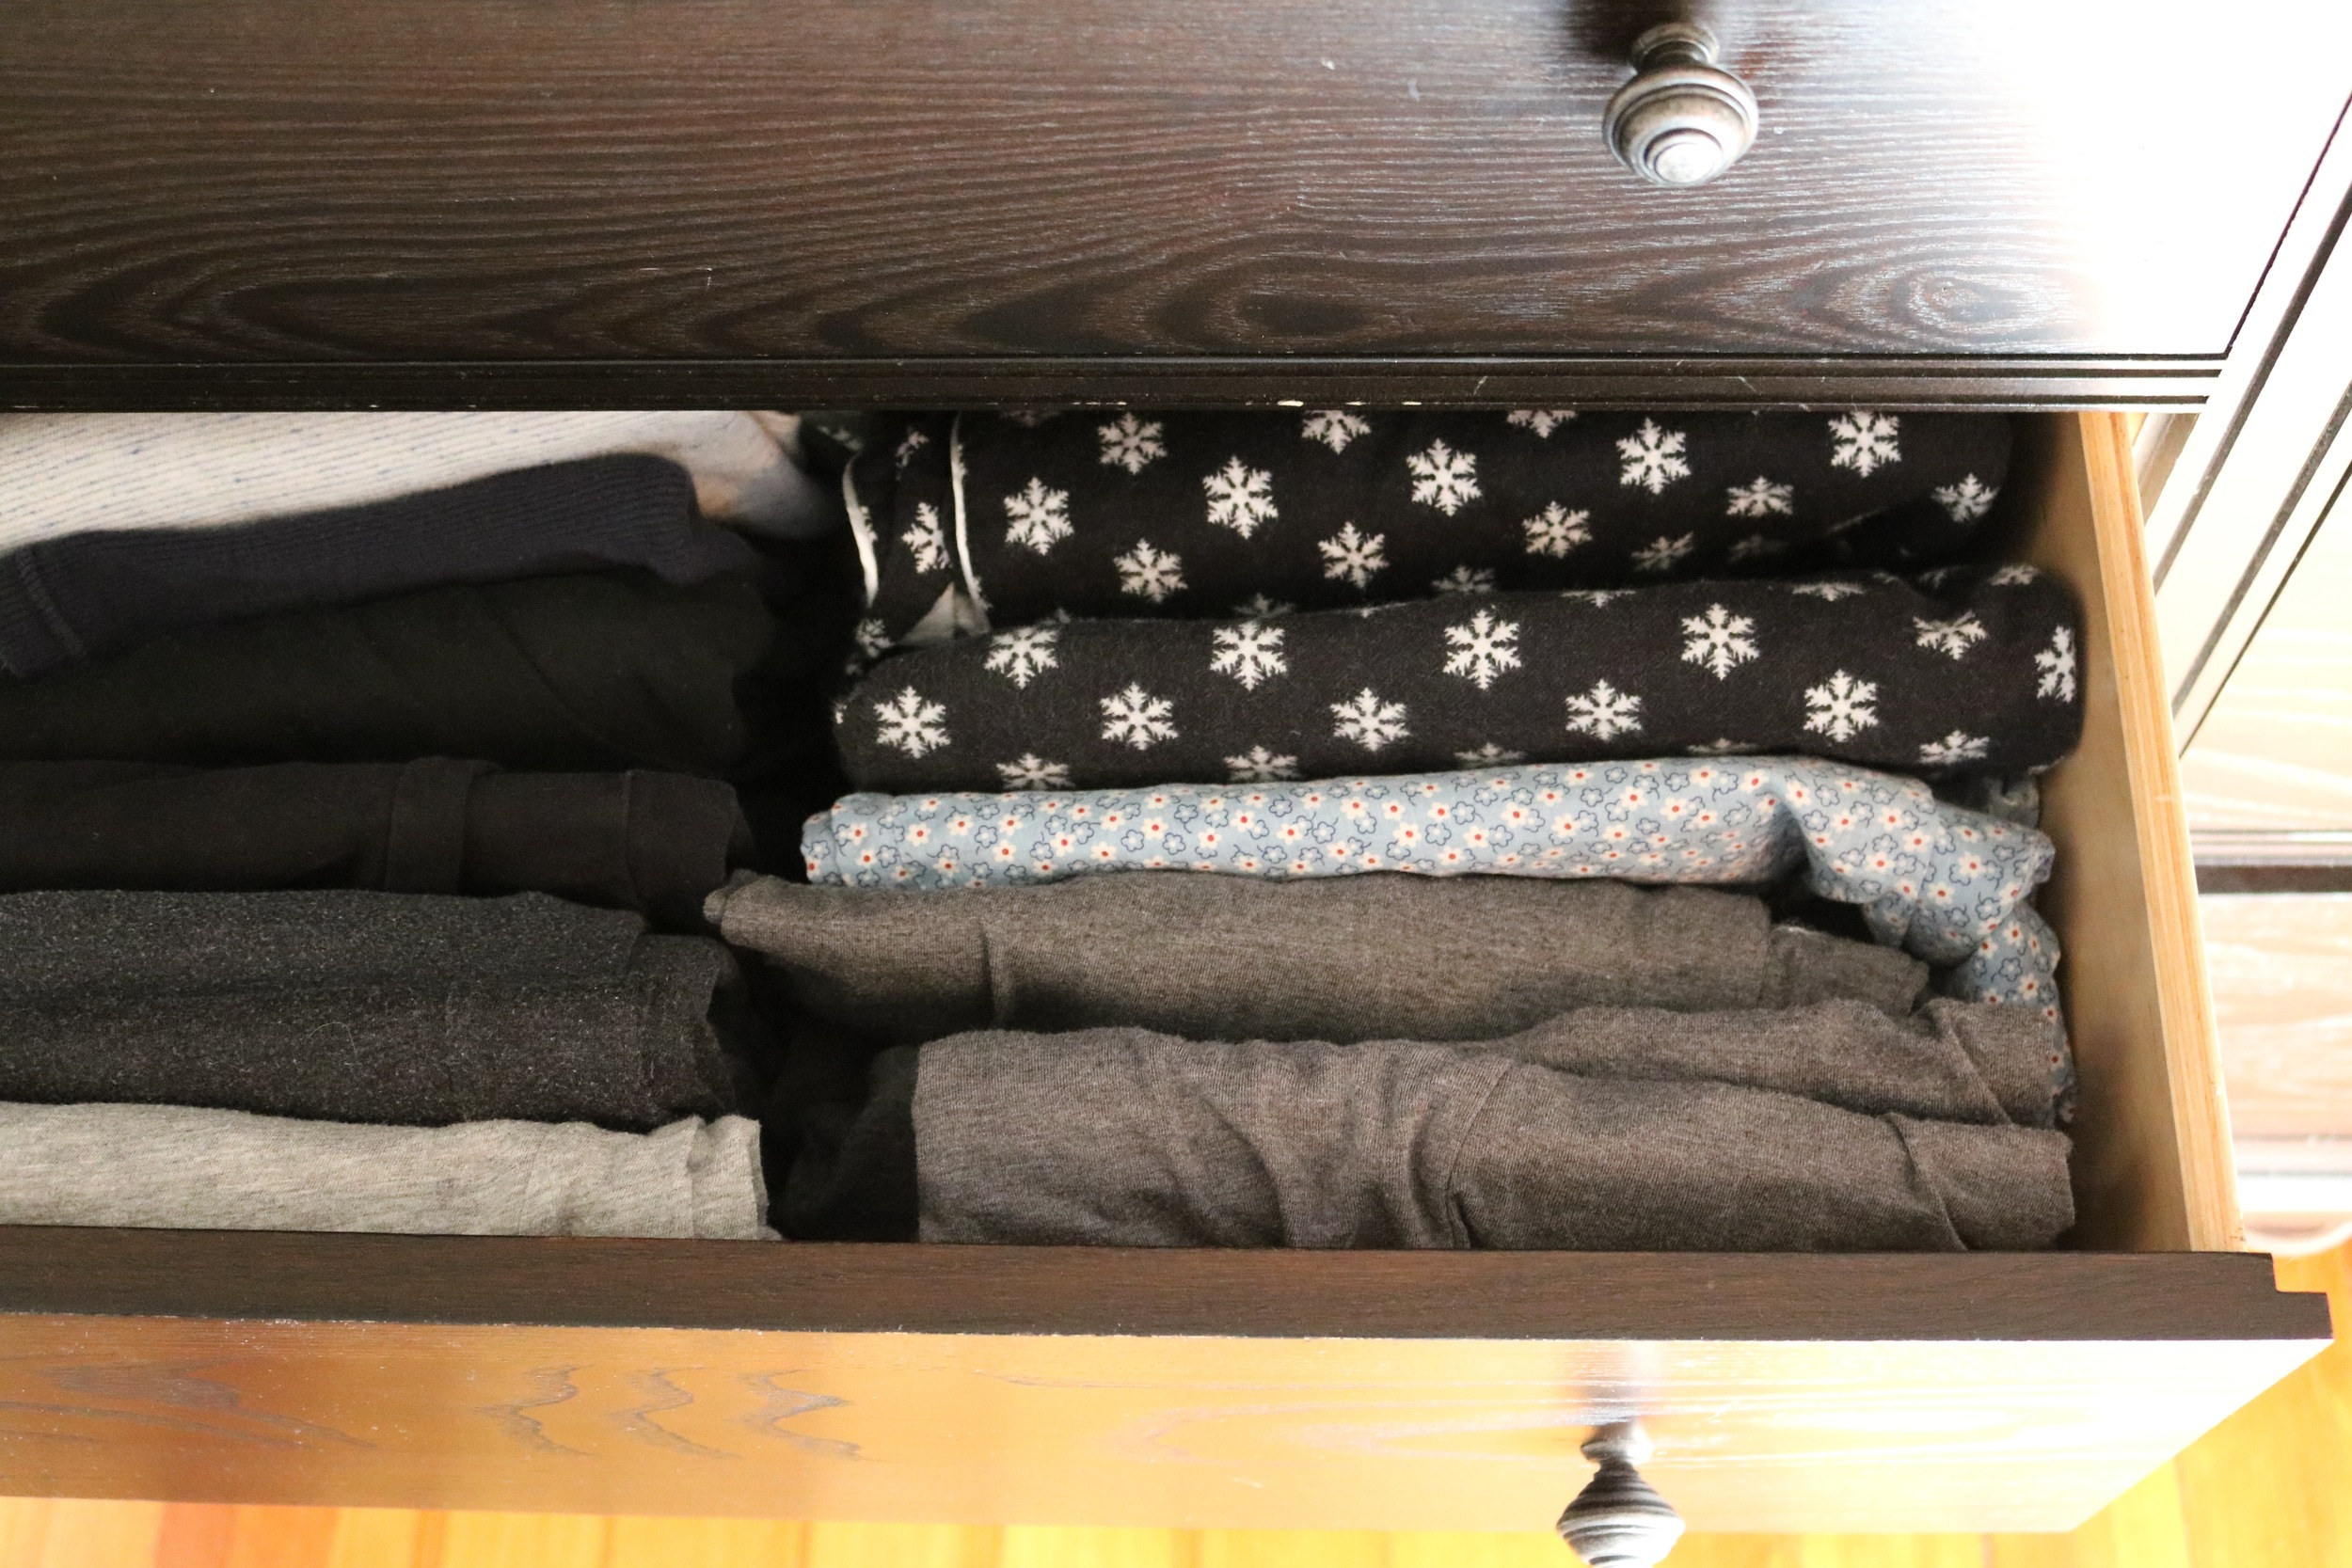 Vertically-filed pajamas and loungewear, post-Kondo purge.